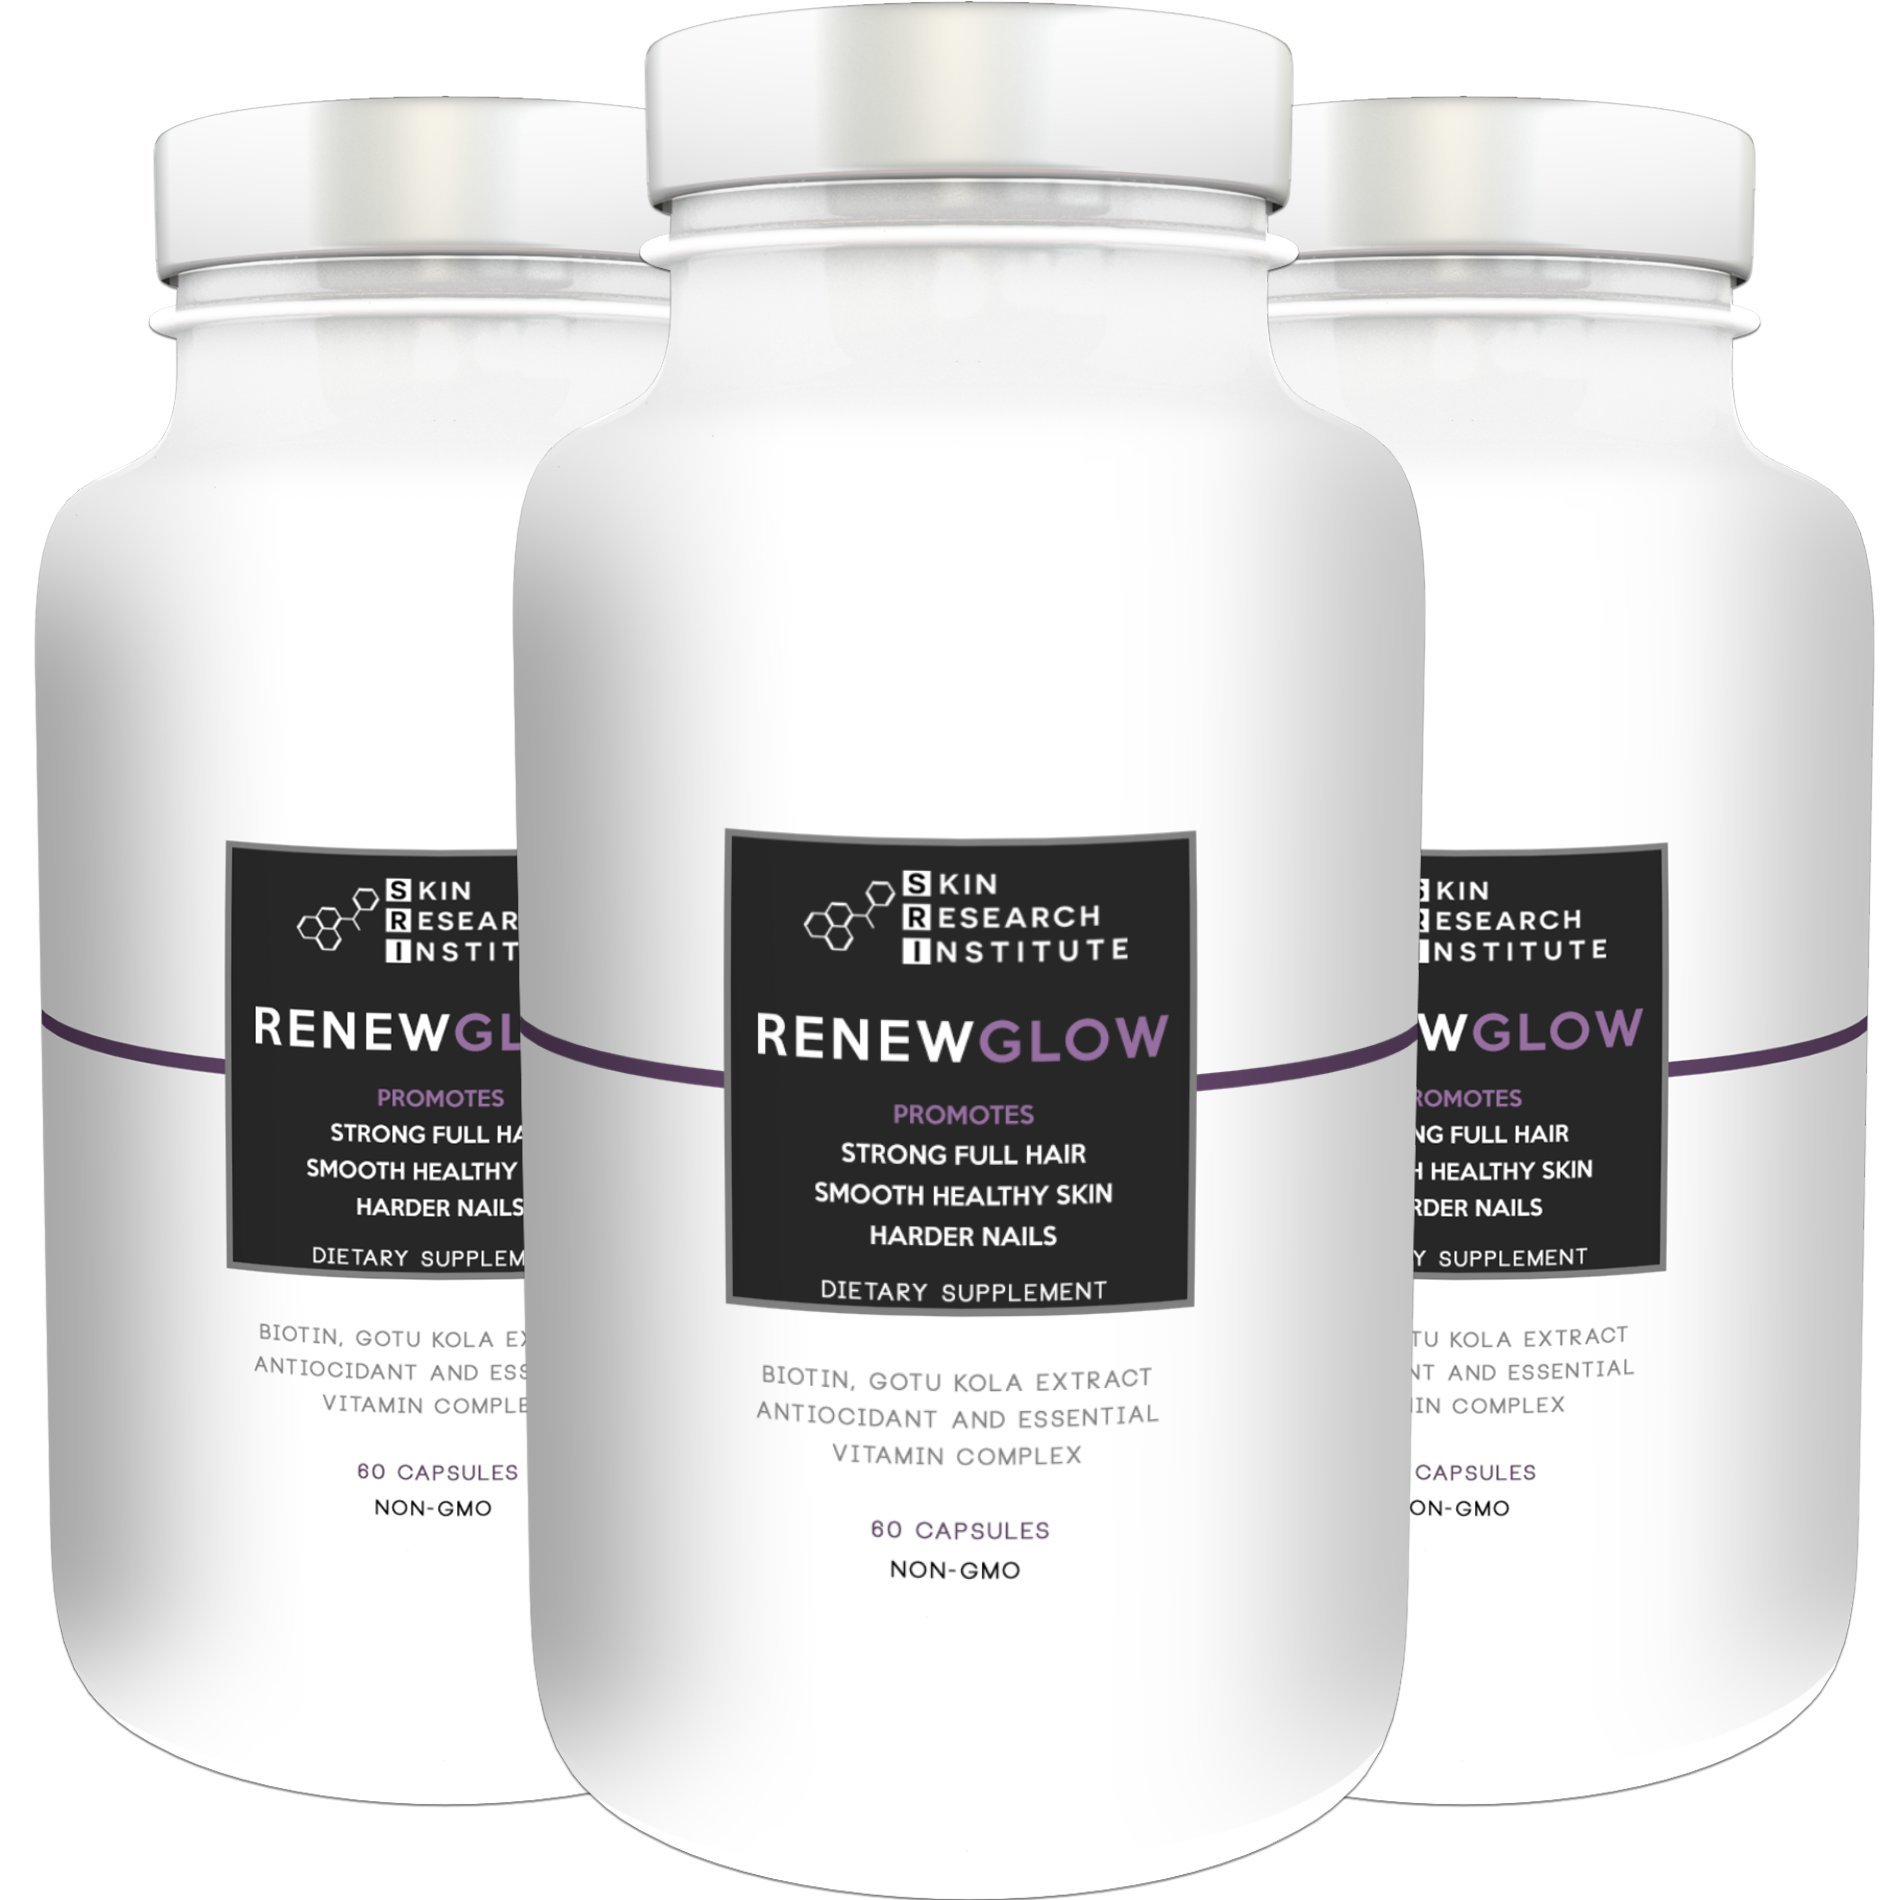 Renewglow - Anti Aging Supplement Fights Against Biotin Deficiency, Free Radicals and Prevents Oxidation to Restore Hair and Skin for A Healthy Glow (3 - Pack)